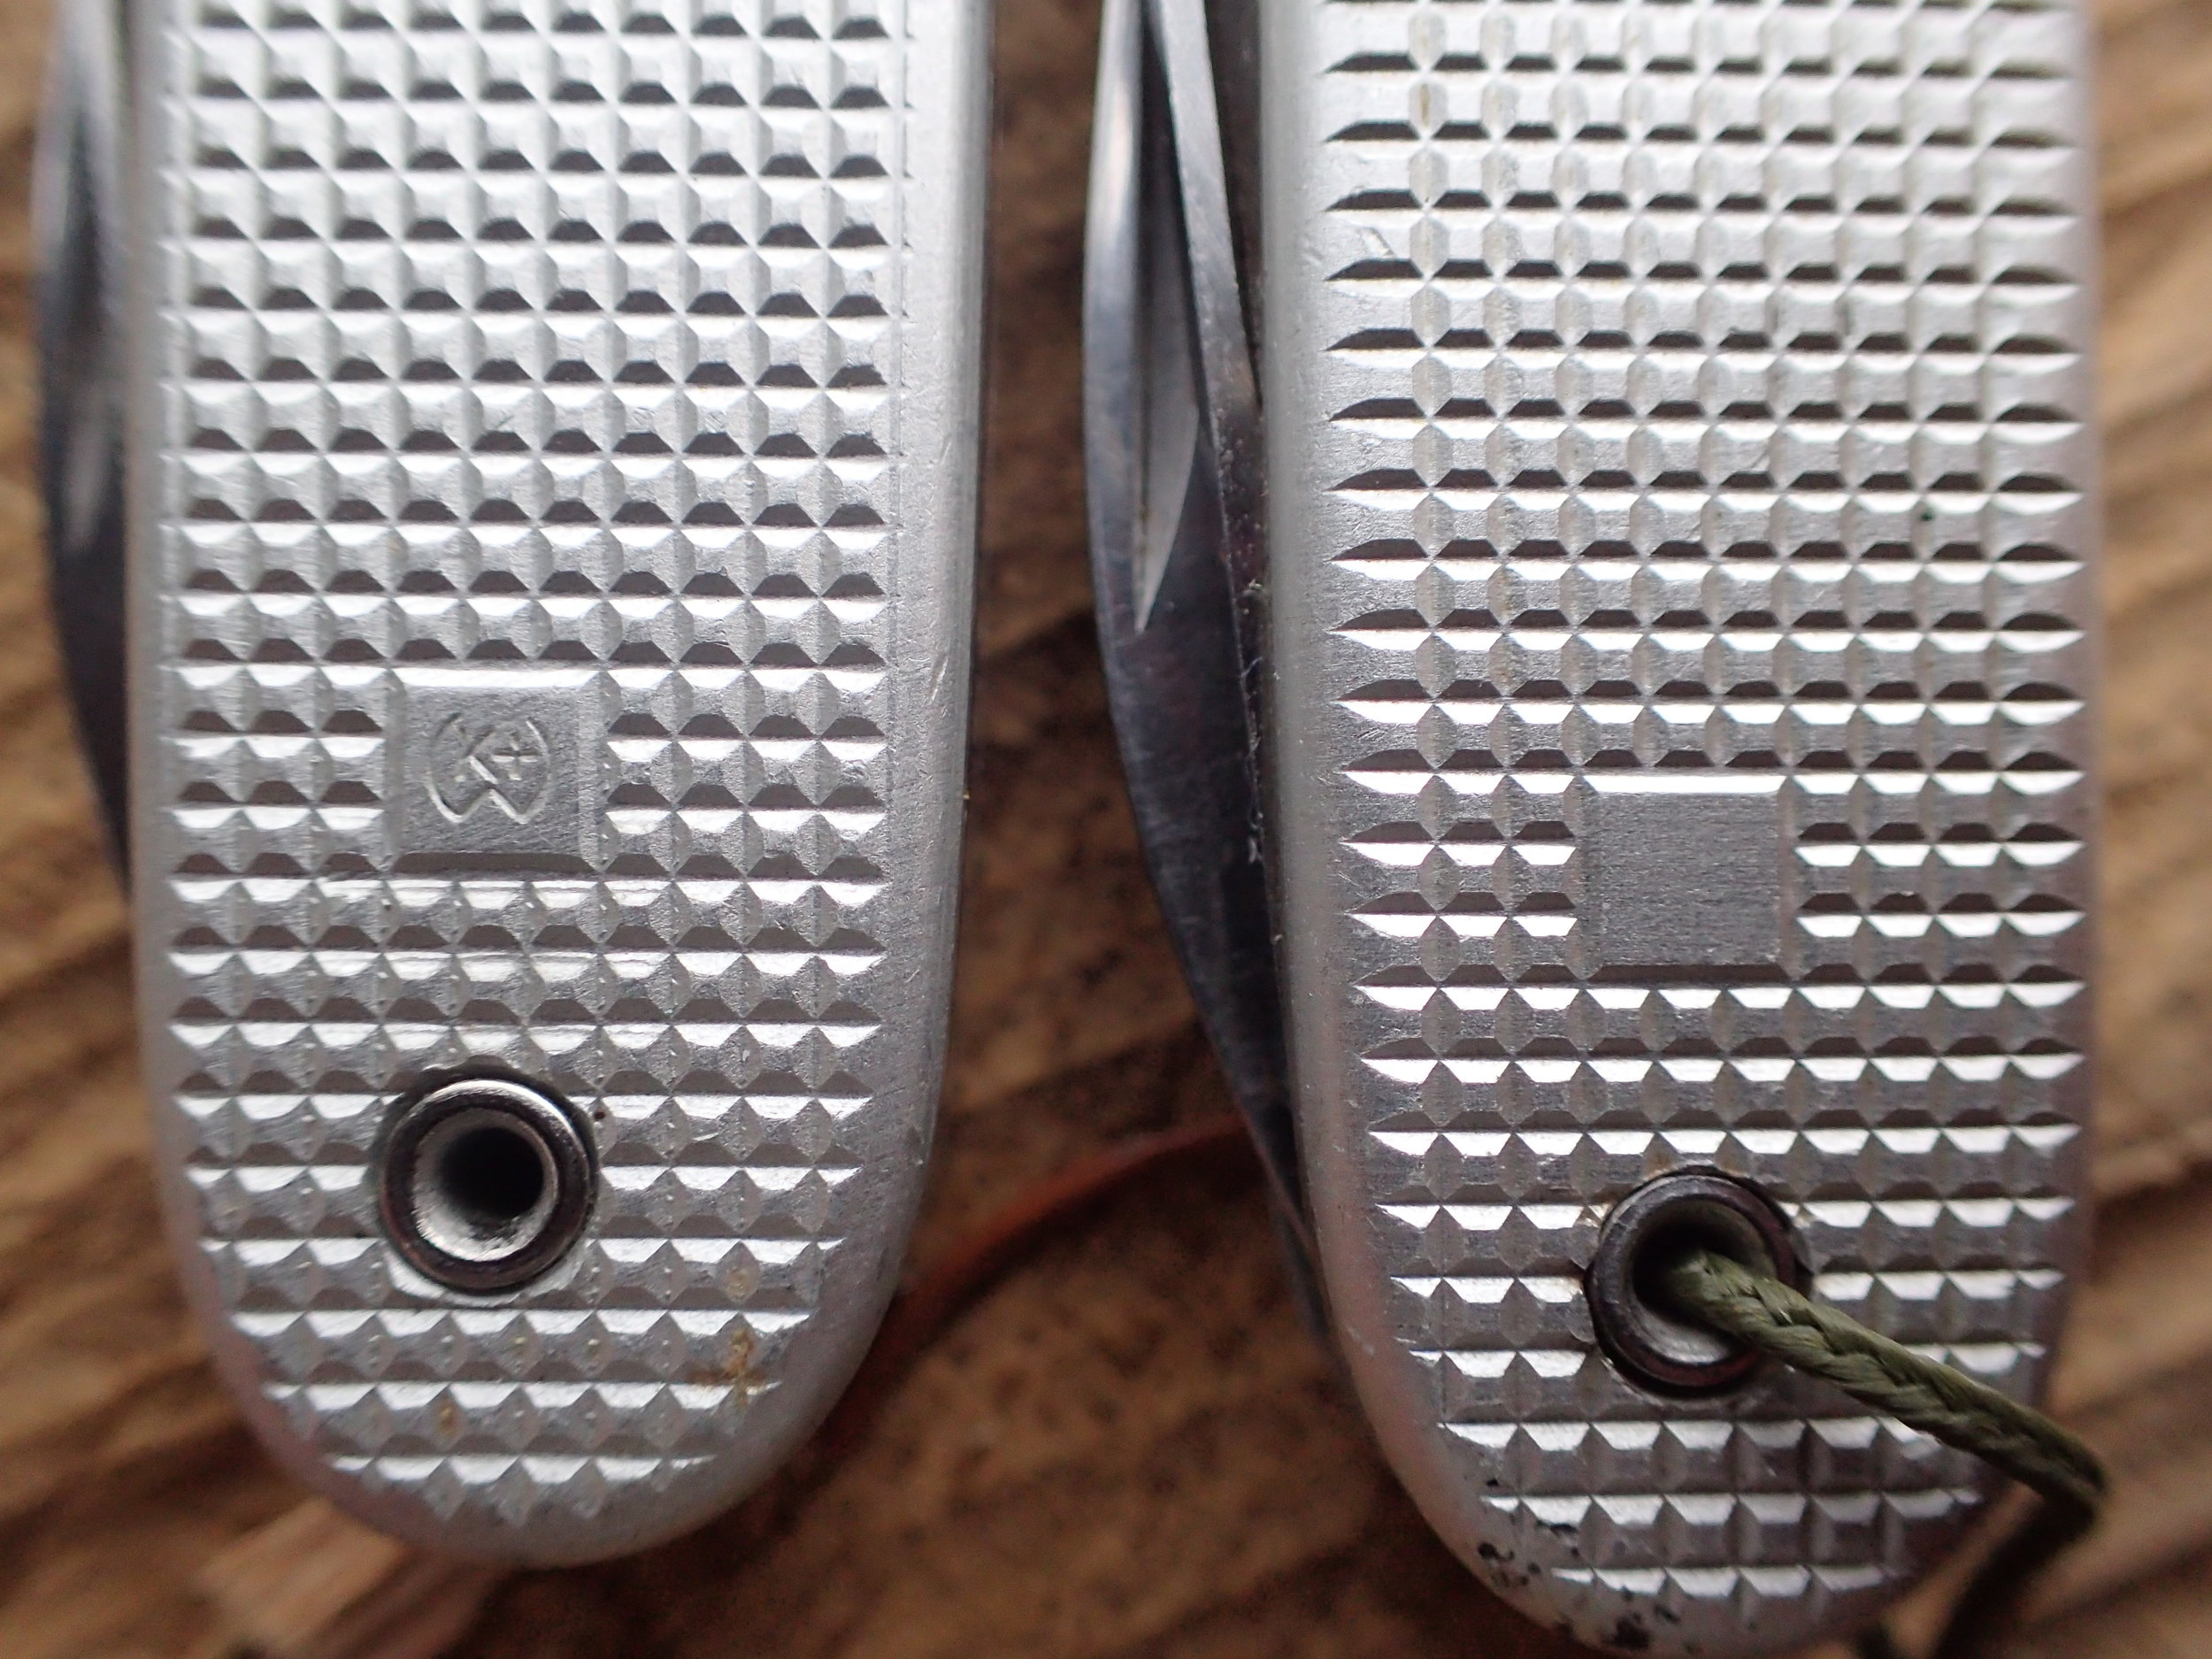 The cartouche with and without W-K stamp on version 4 SAKs. These knives date from '81 (L) and '83 (R).